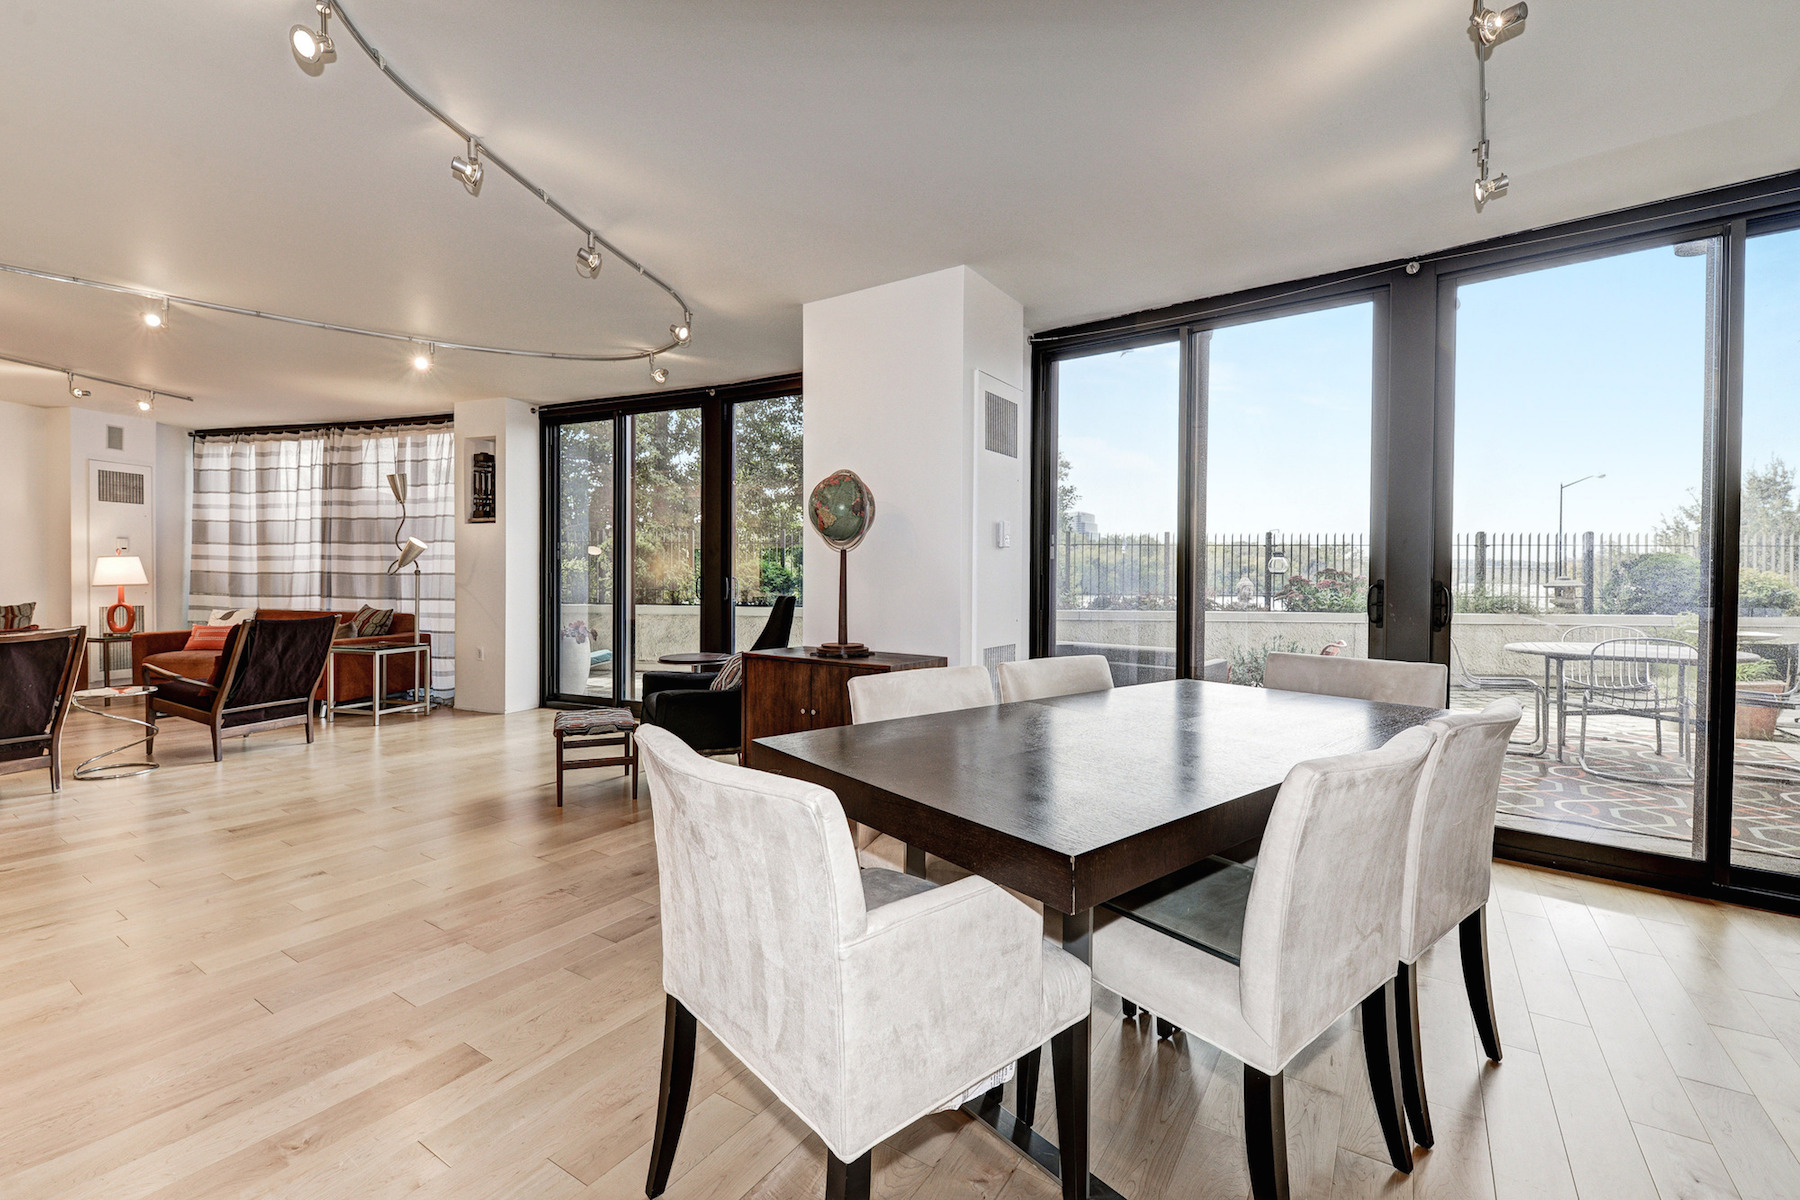 Condominium for Sale at Completely Renovated with Panoramic River Views 700 New Hampshire Avenue Nw 107 Washington, District Of Columbia, 20037 United States